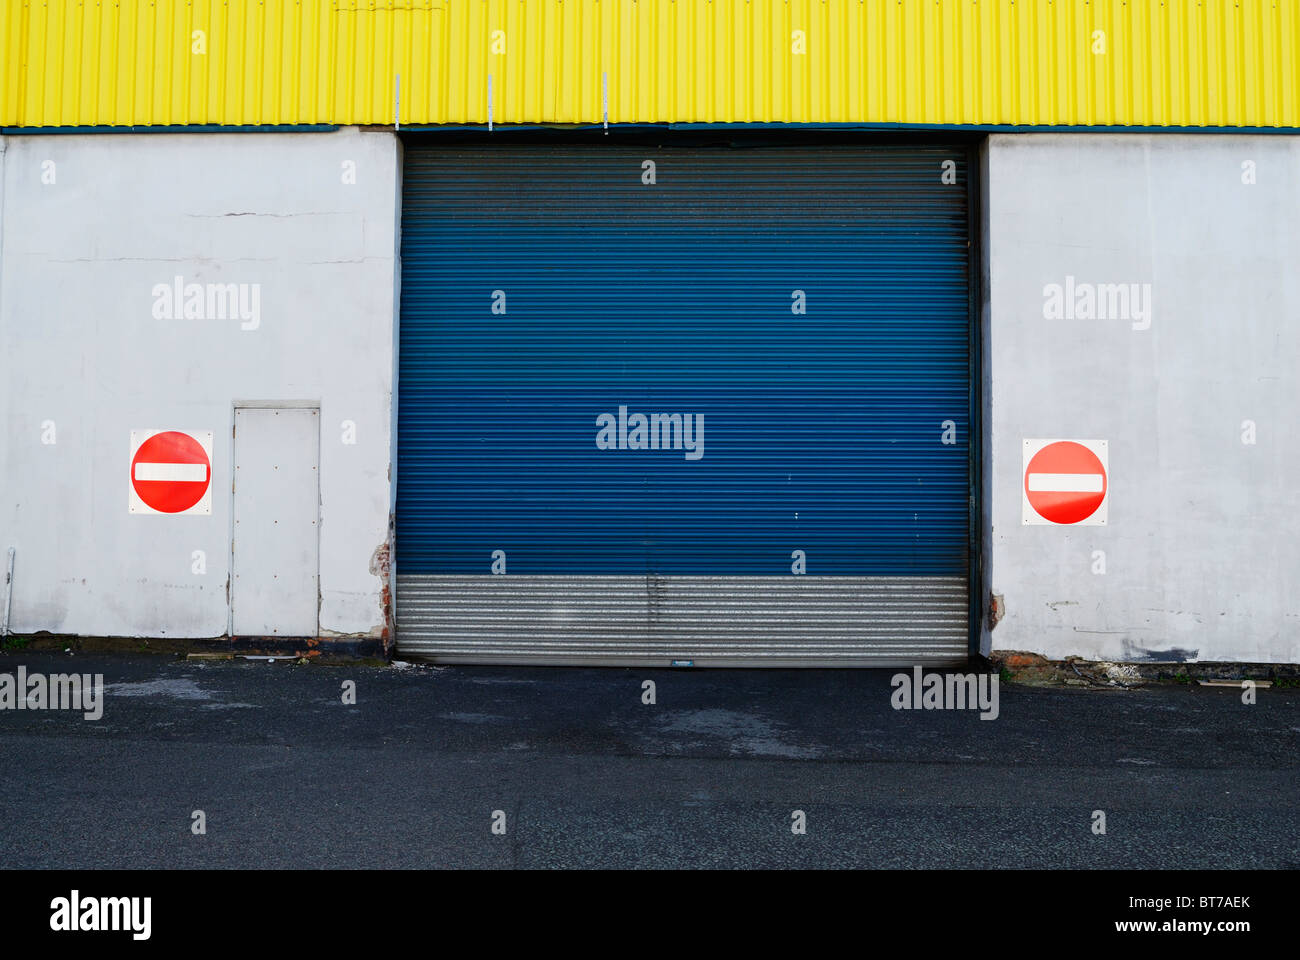 Blue roller shutter doors and no entry signs - Stock Image